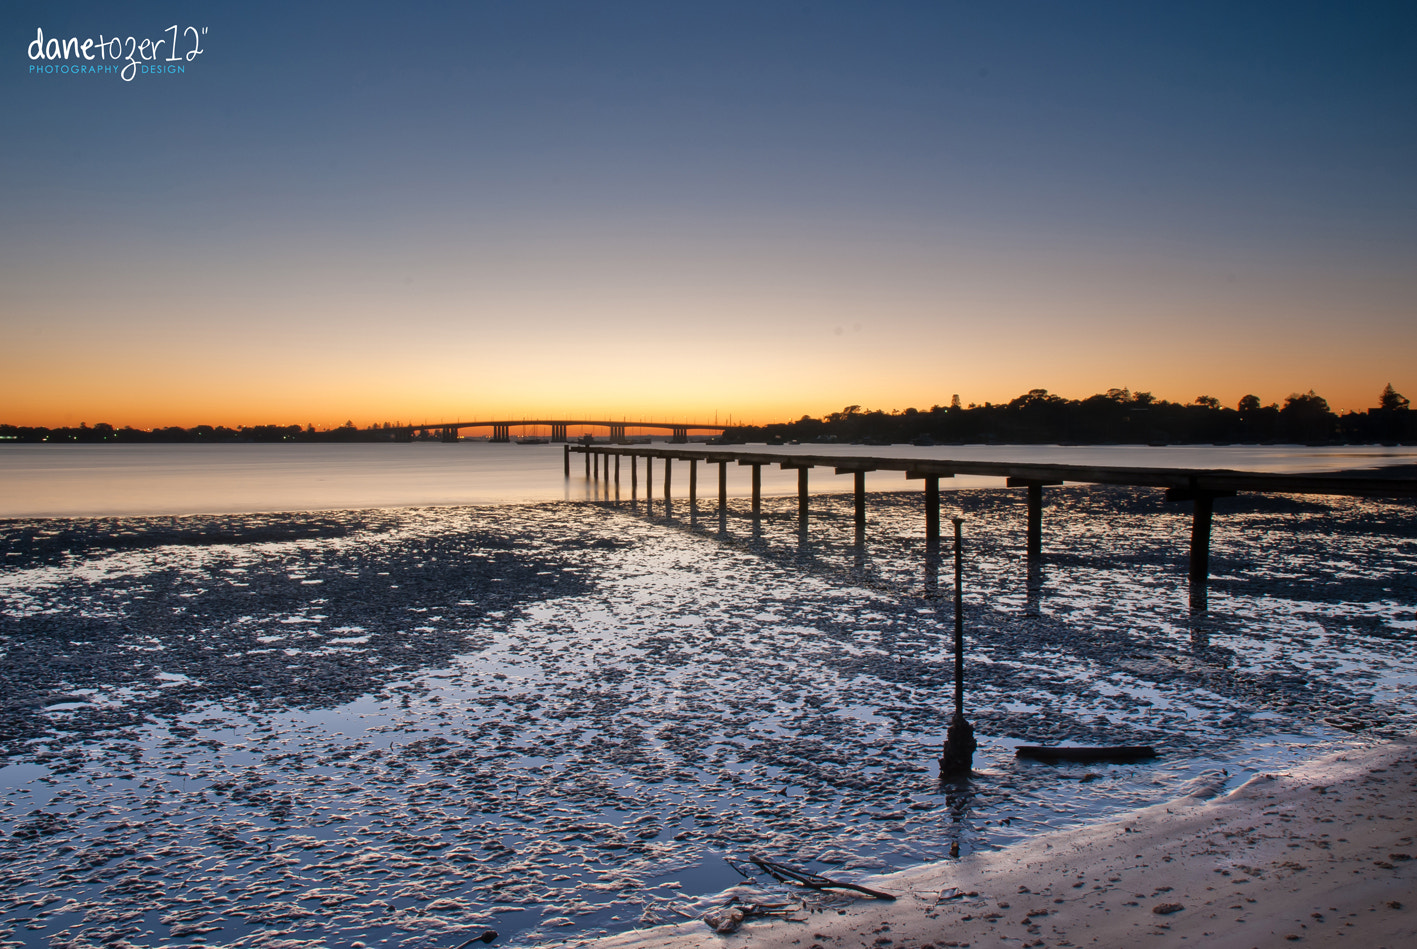 Photograph Jetty at Sylvania Waters by Dane Tozer on 500px